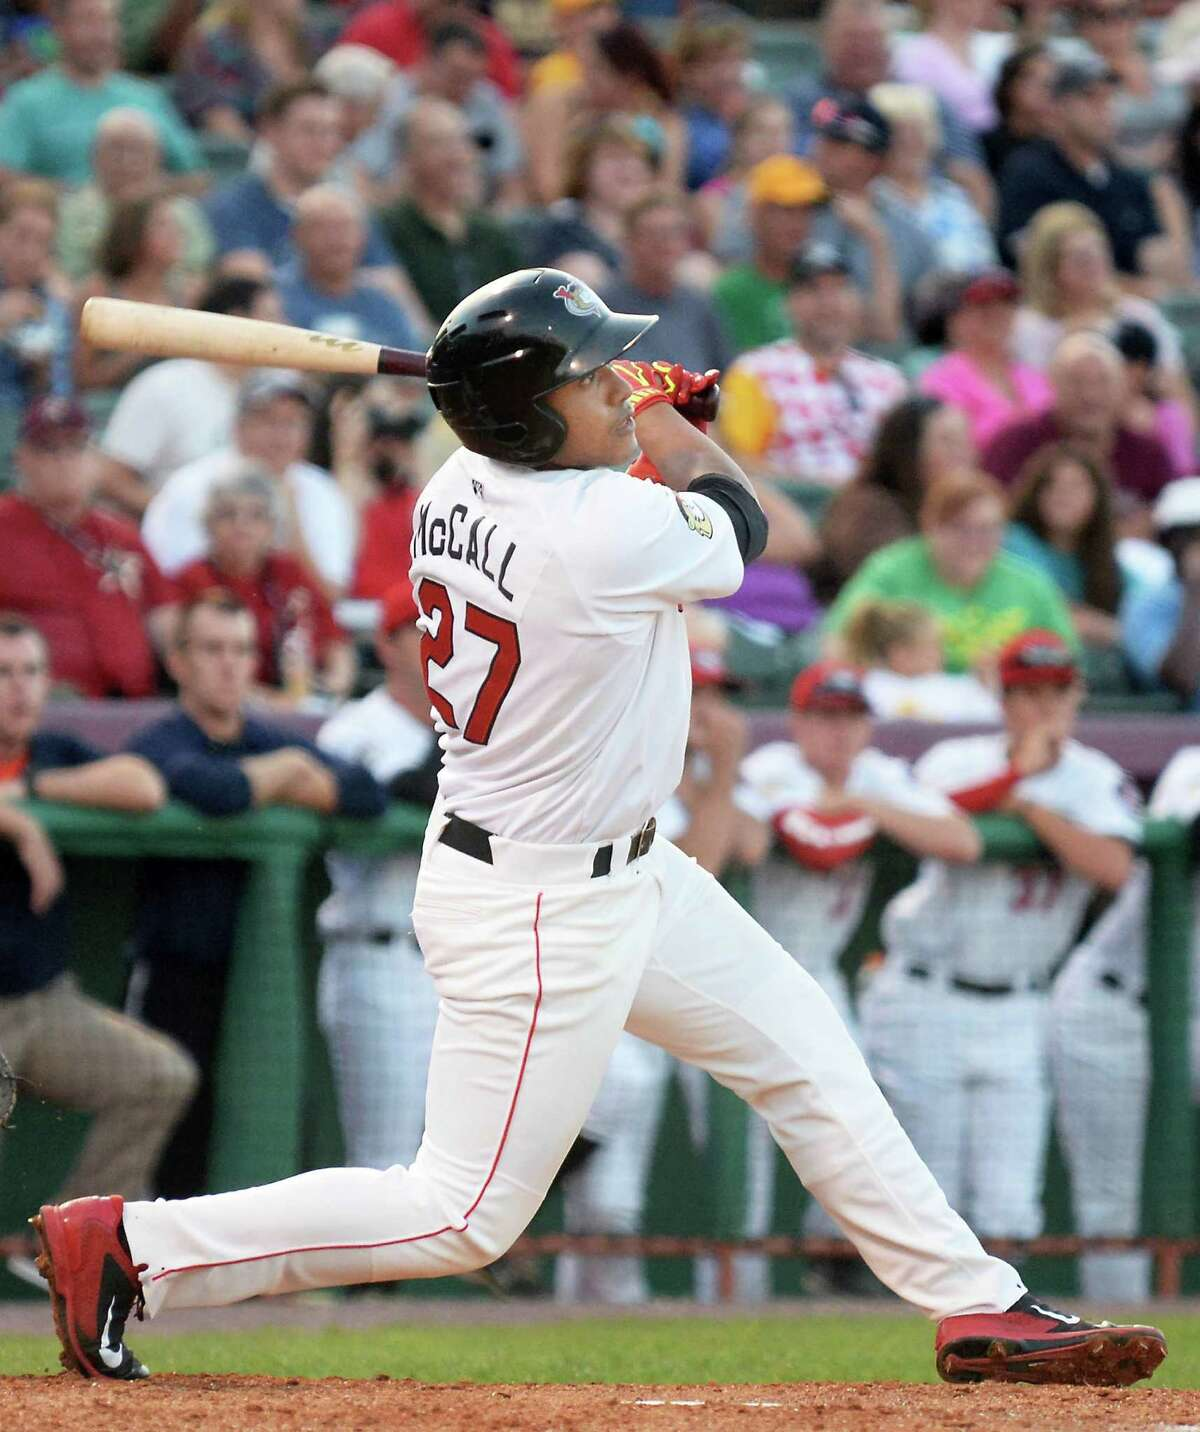 Tri-City ValleyCats' Dexture McCall's triples during Saturday's game against the Hudson Valley Renegades at Joe Bruno Stadium August 22, 2015 in Troy, NY. (John Carl D'Annibale / Times Union)